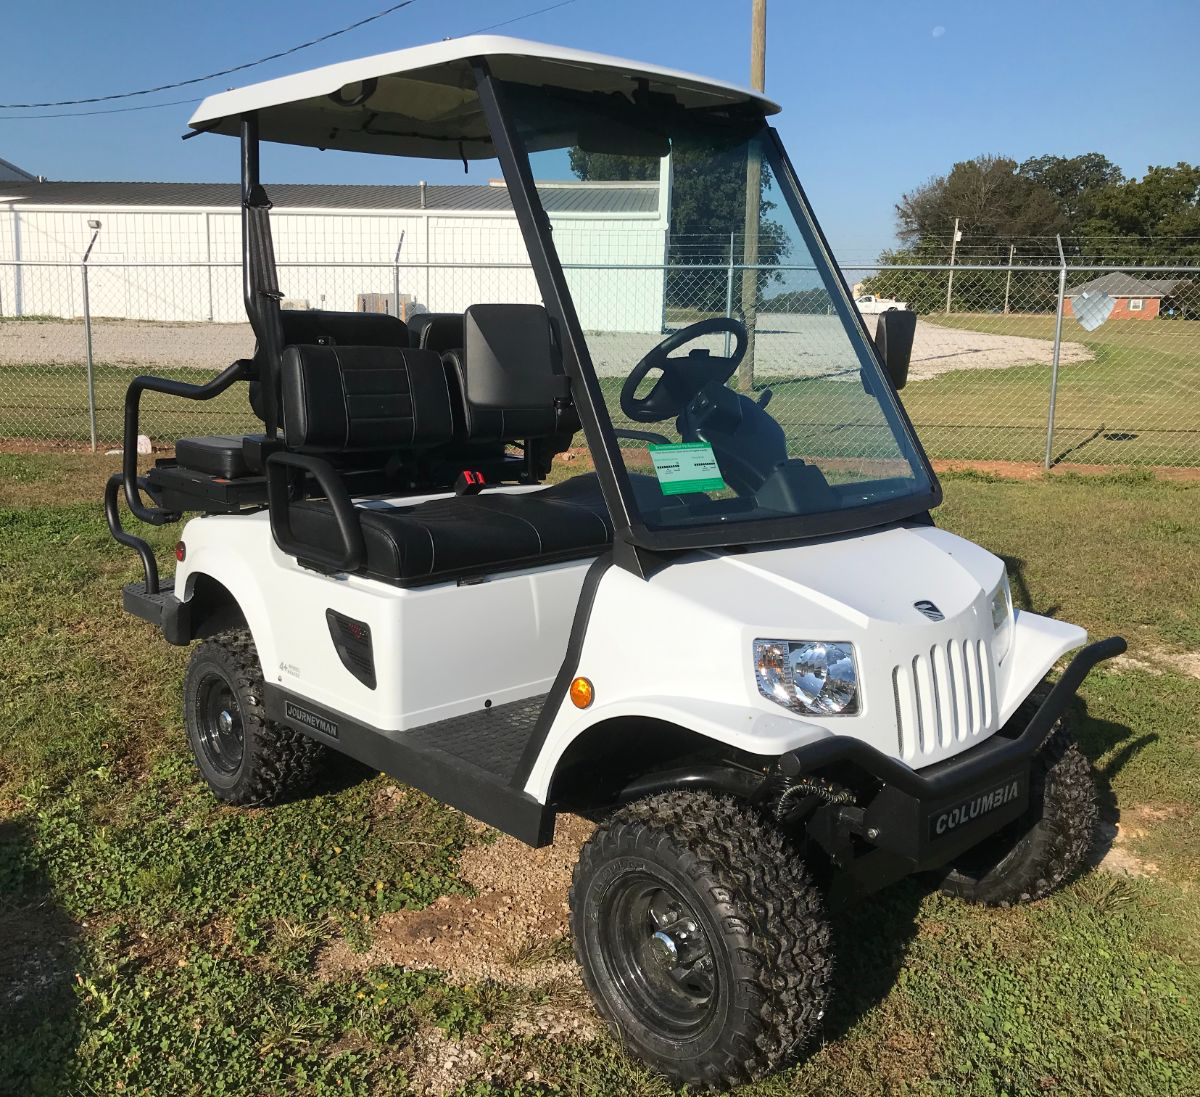 2021 Columbia Journeyman - Street Legal LSV for sale at Lift Service Inc in Alabama